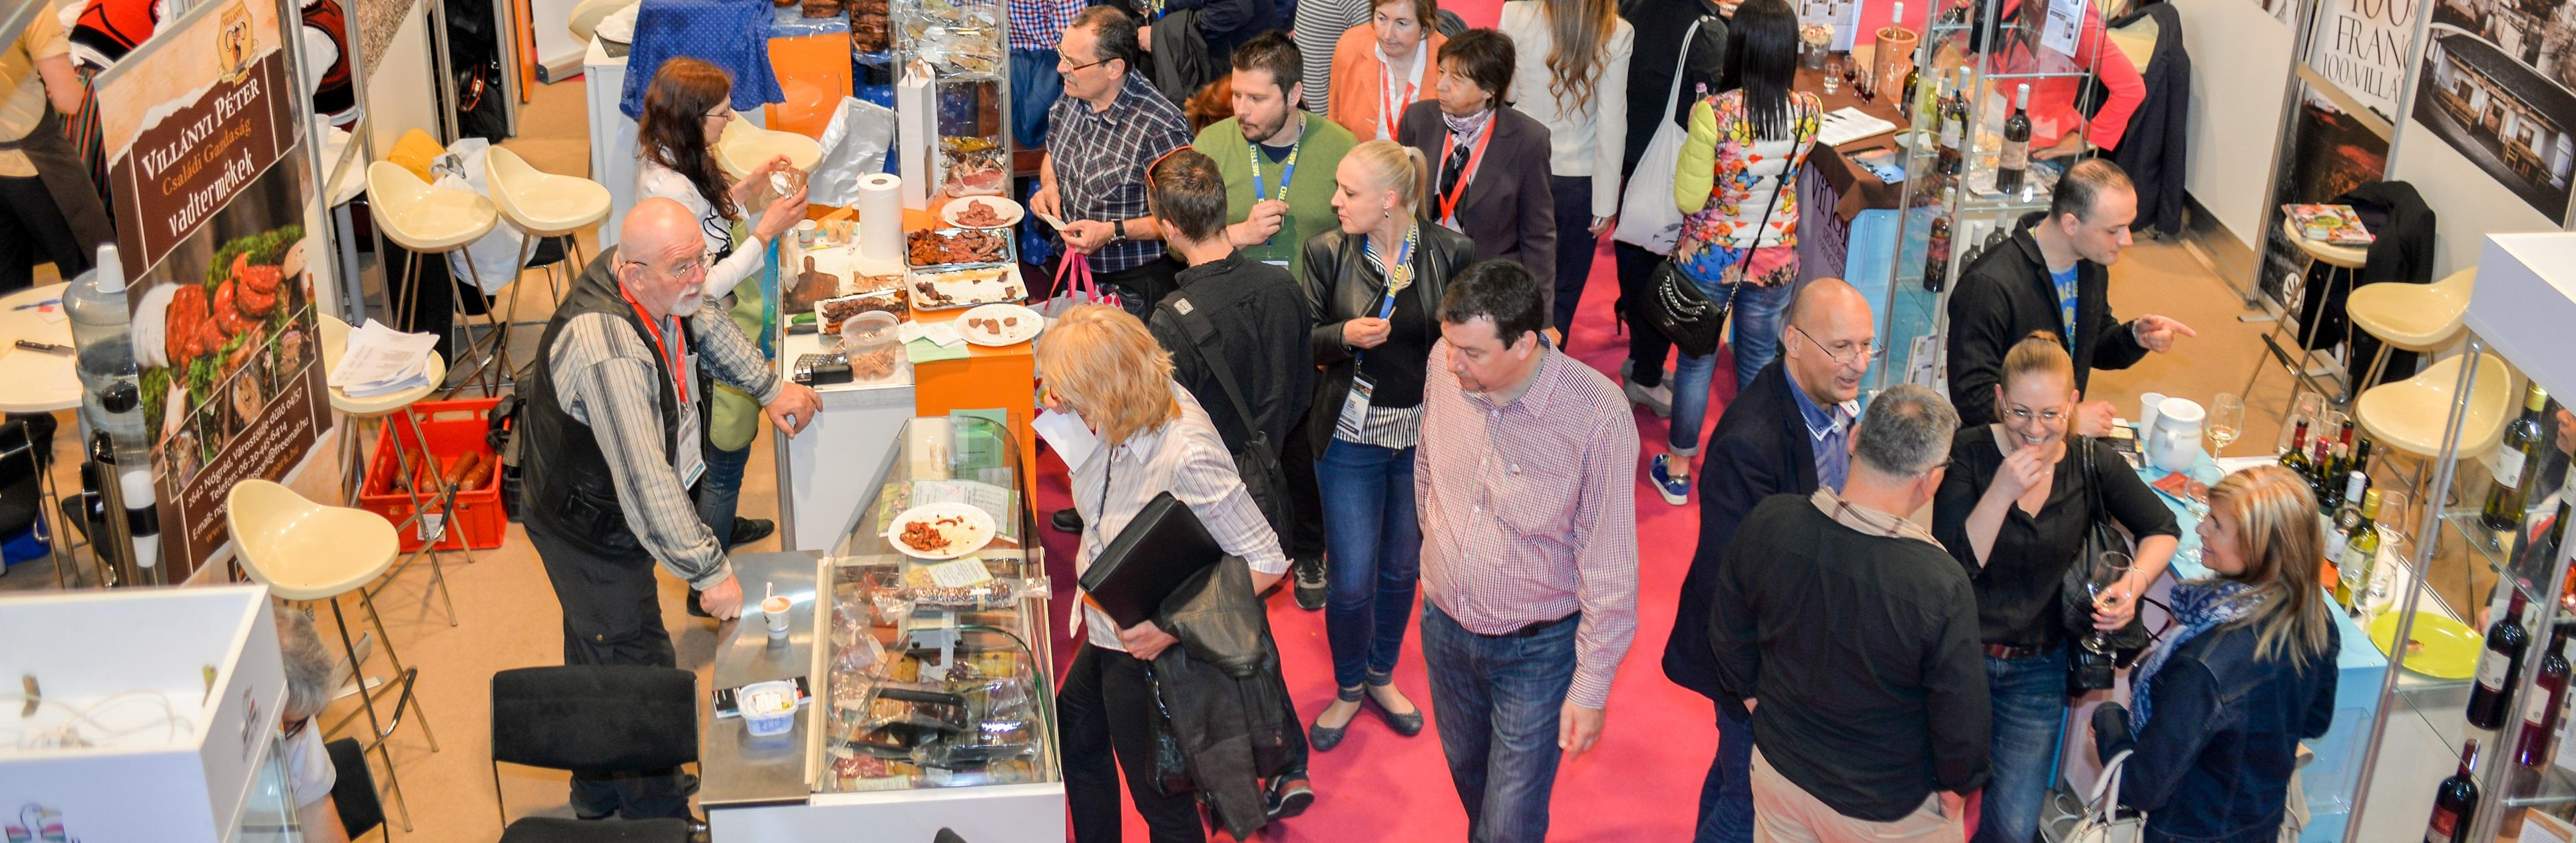 'Sirha Food & Catering Show', Hungexpo, 7 - 9 February